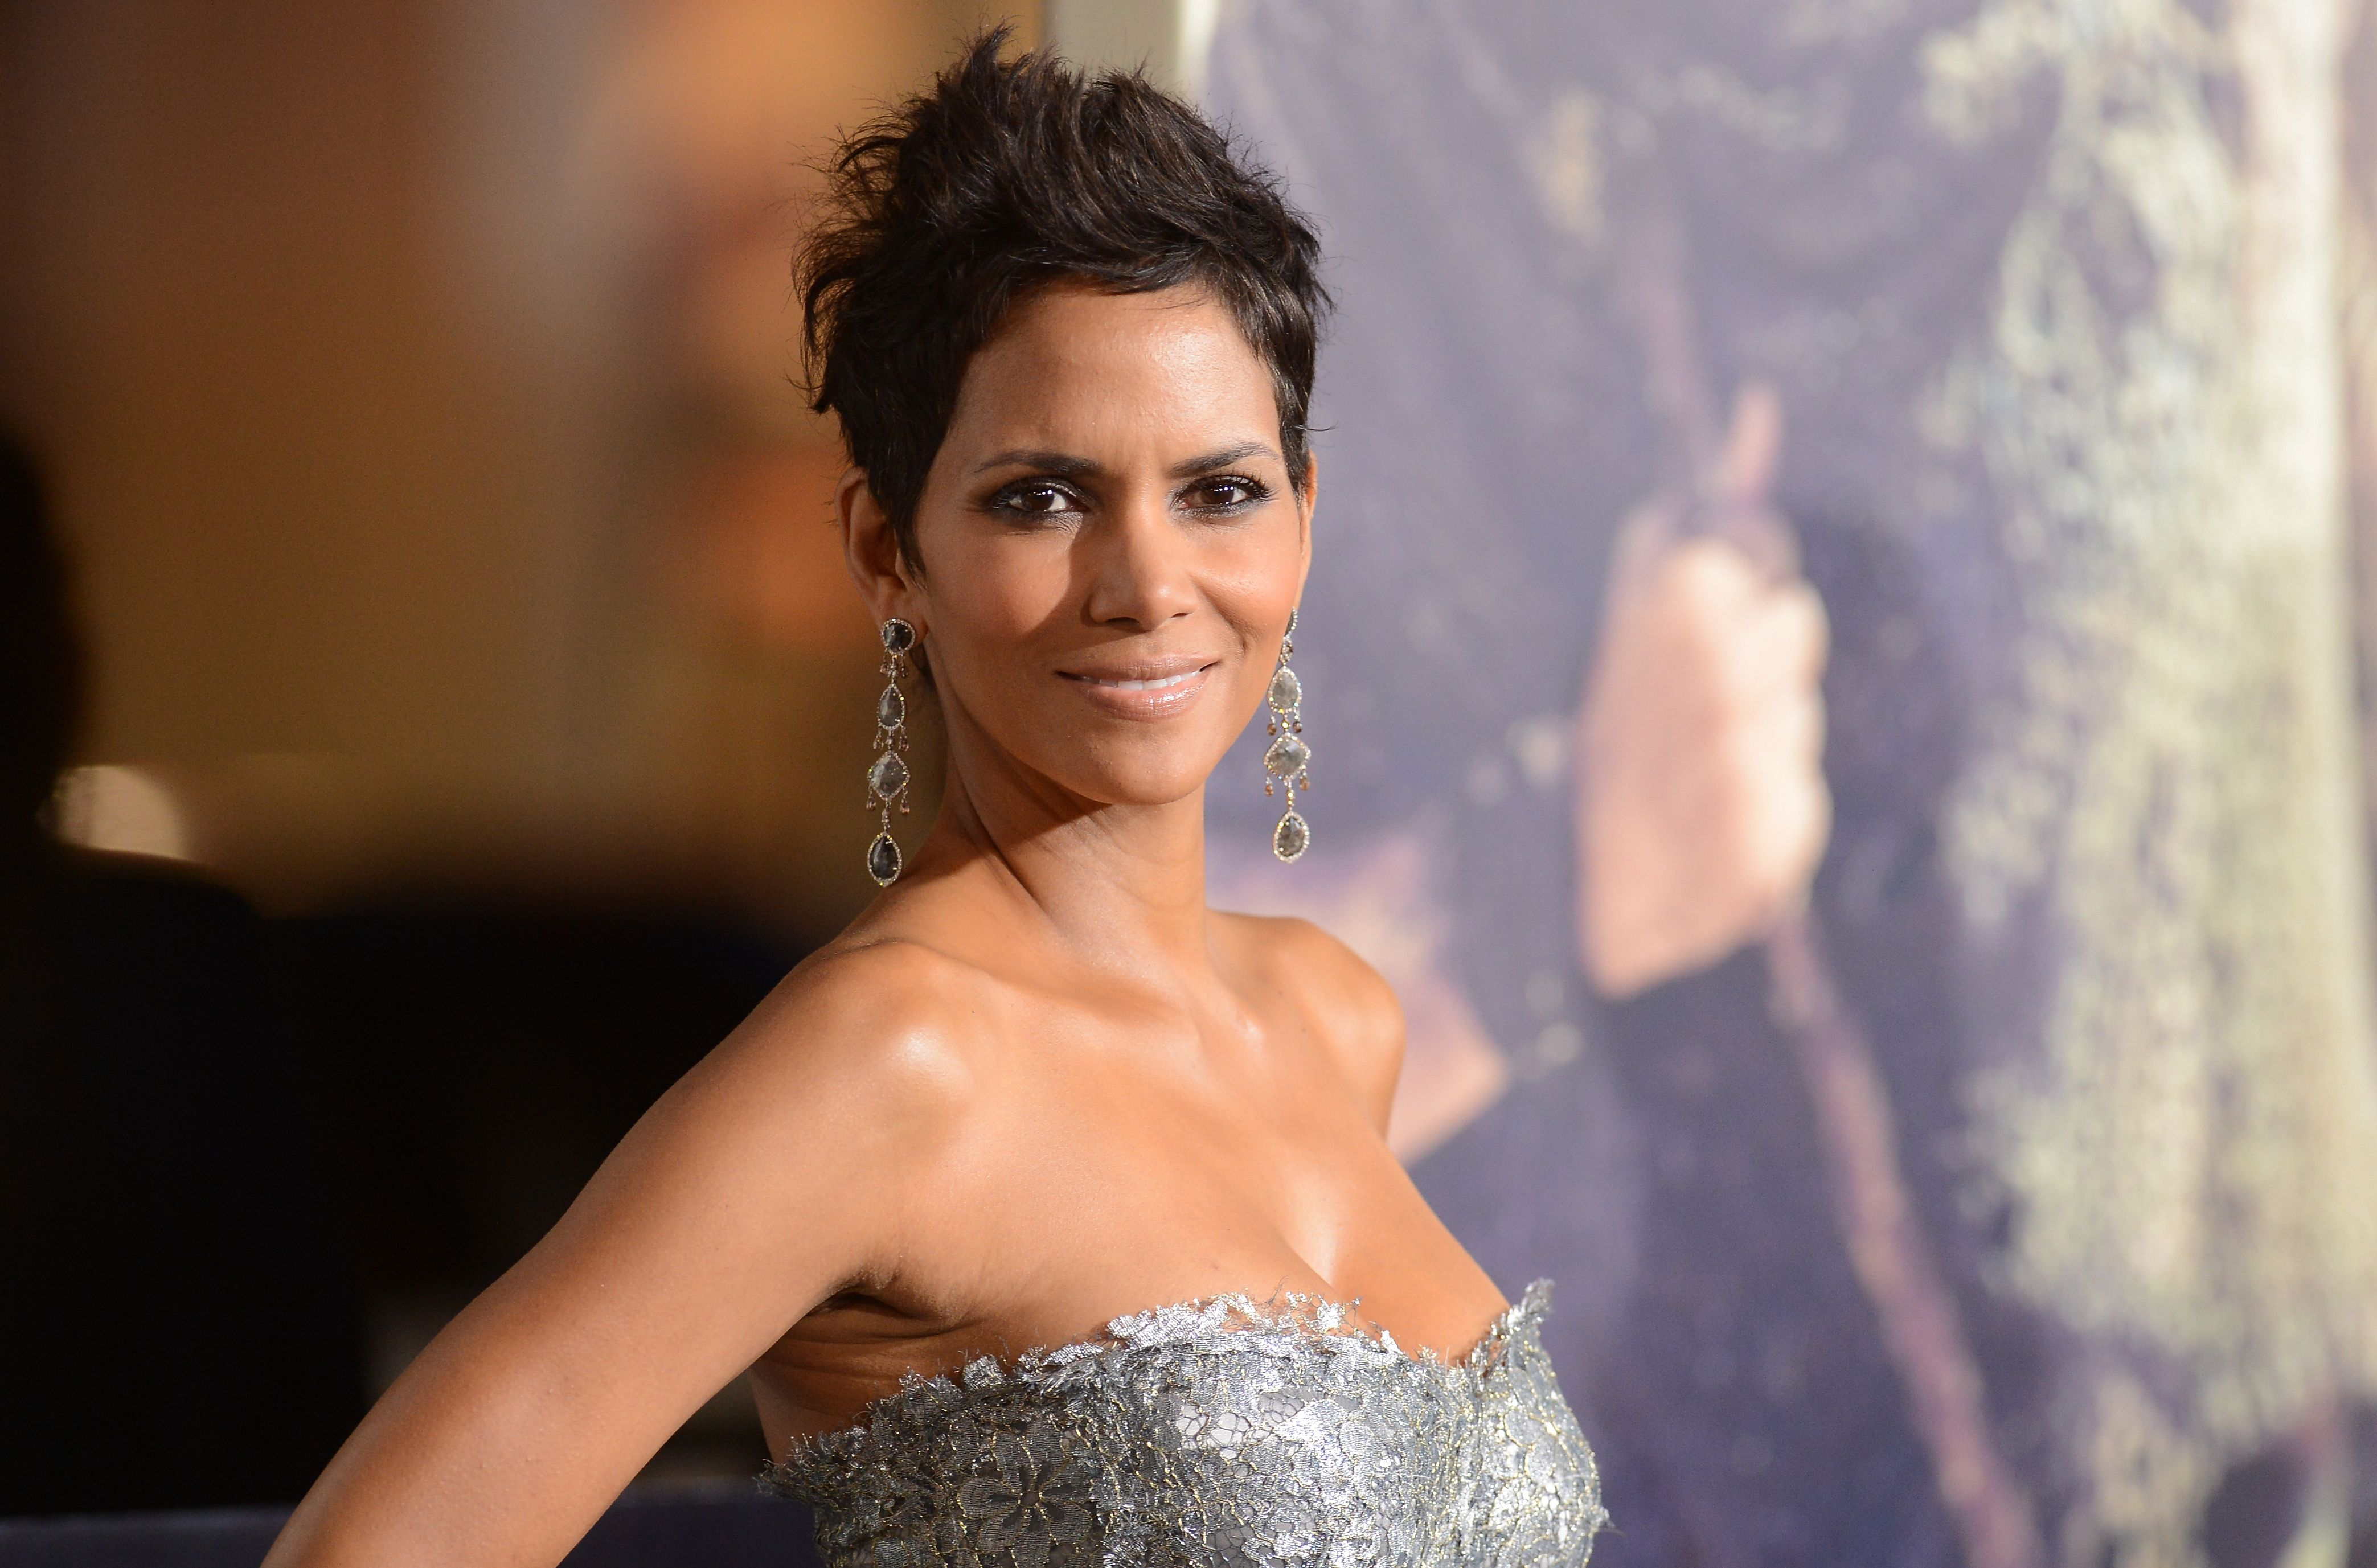 Halle Berry at Warner Bros. Pictures' 'Cloud Atlas' premiere at Grauman's Chinese Theatre on October 24, 2012 in Hollywood, California. | Photo: Getty Images.